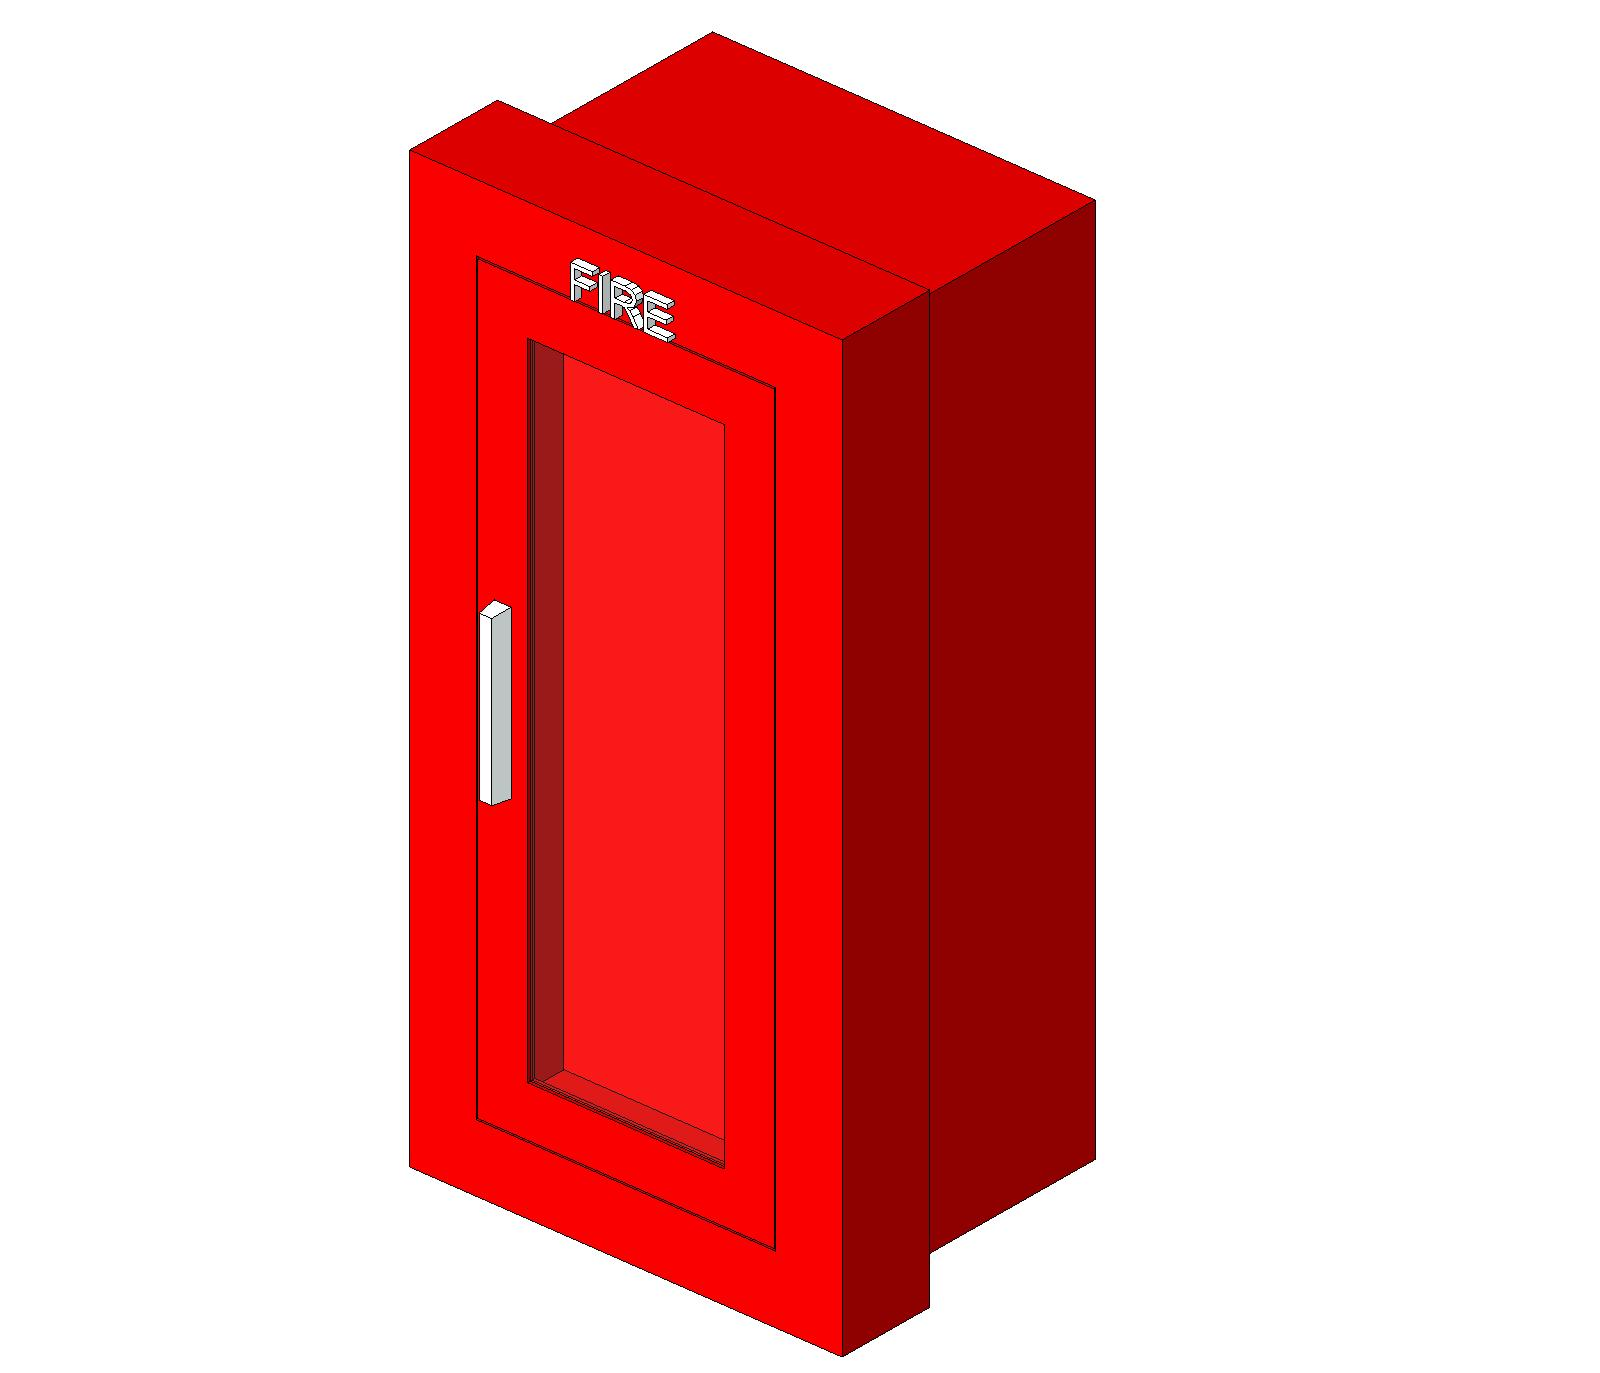 Generic Fire Protection Specialties BIM Objects Families